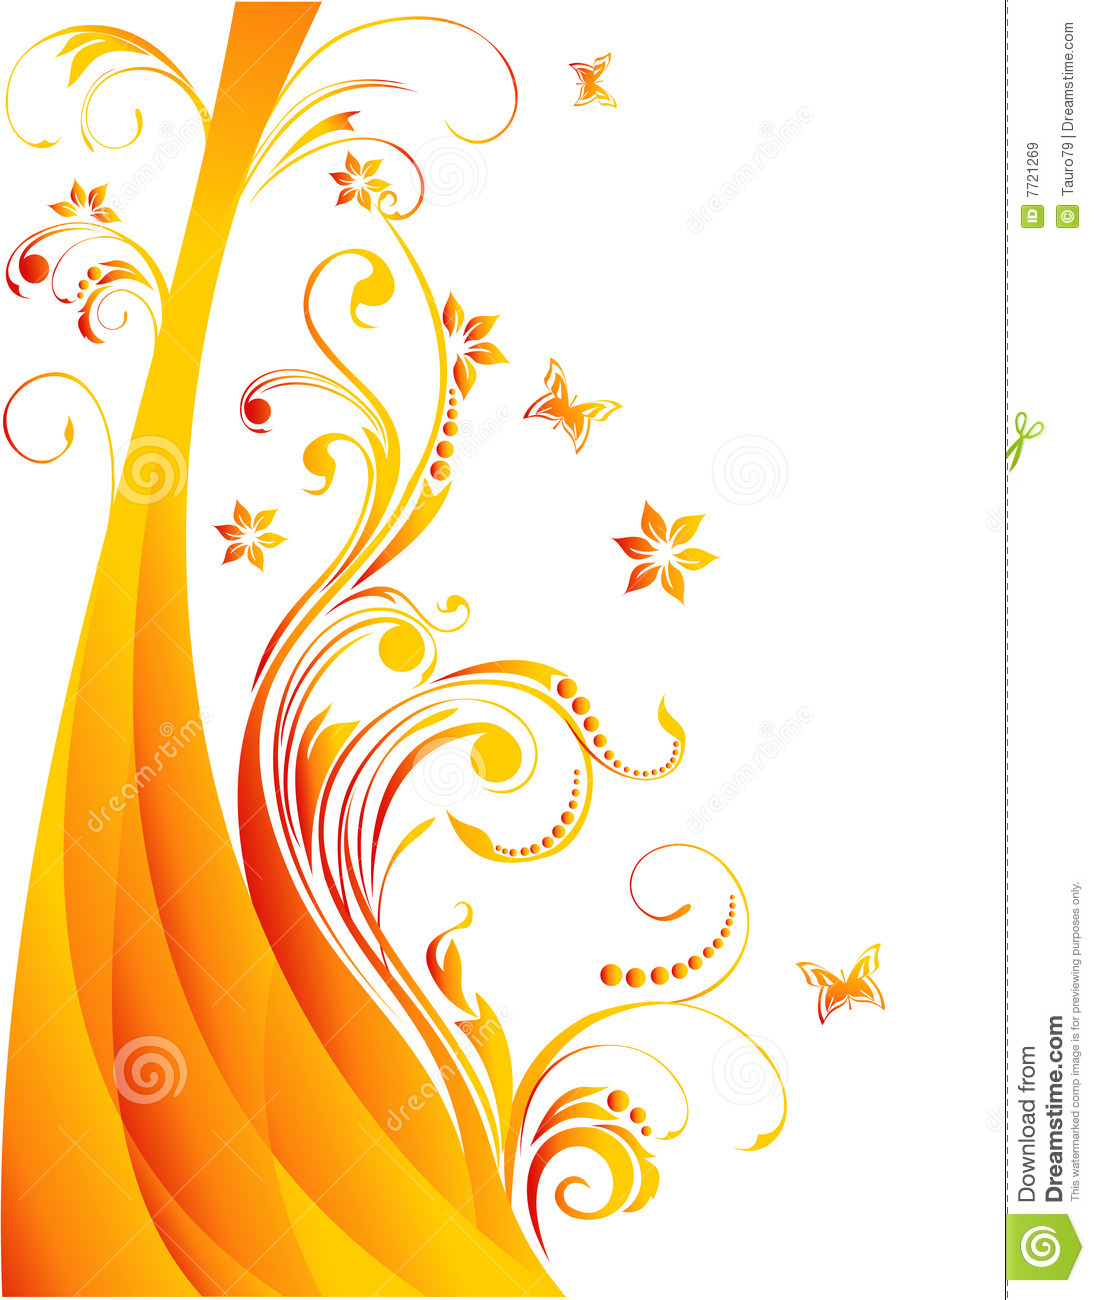 vector royalty free stock images image 2183529 vector flower illustration royalty free stock images image 7721269